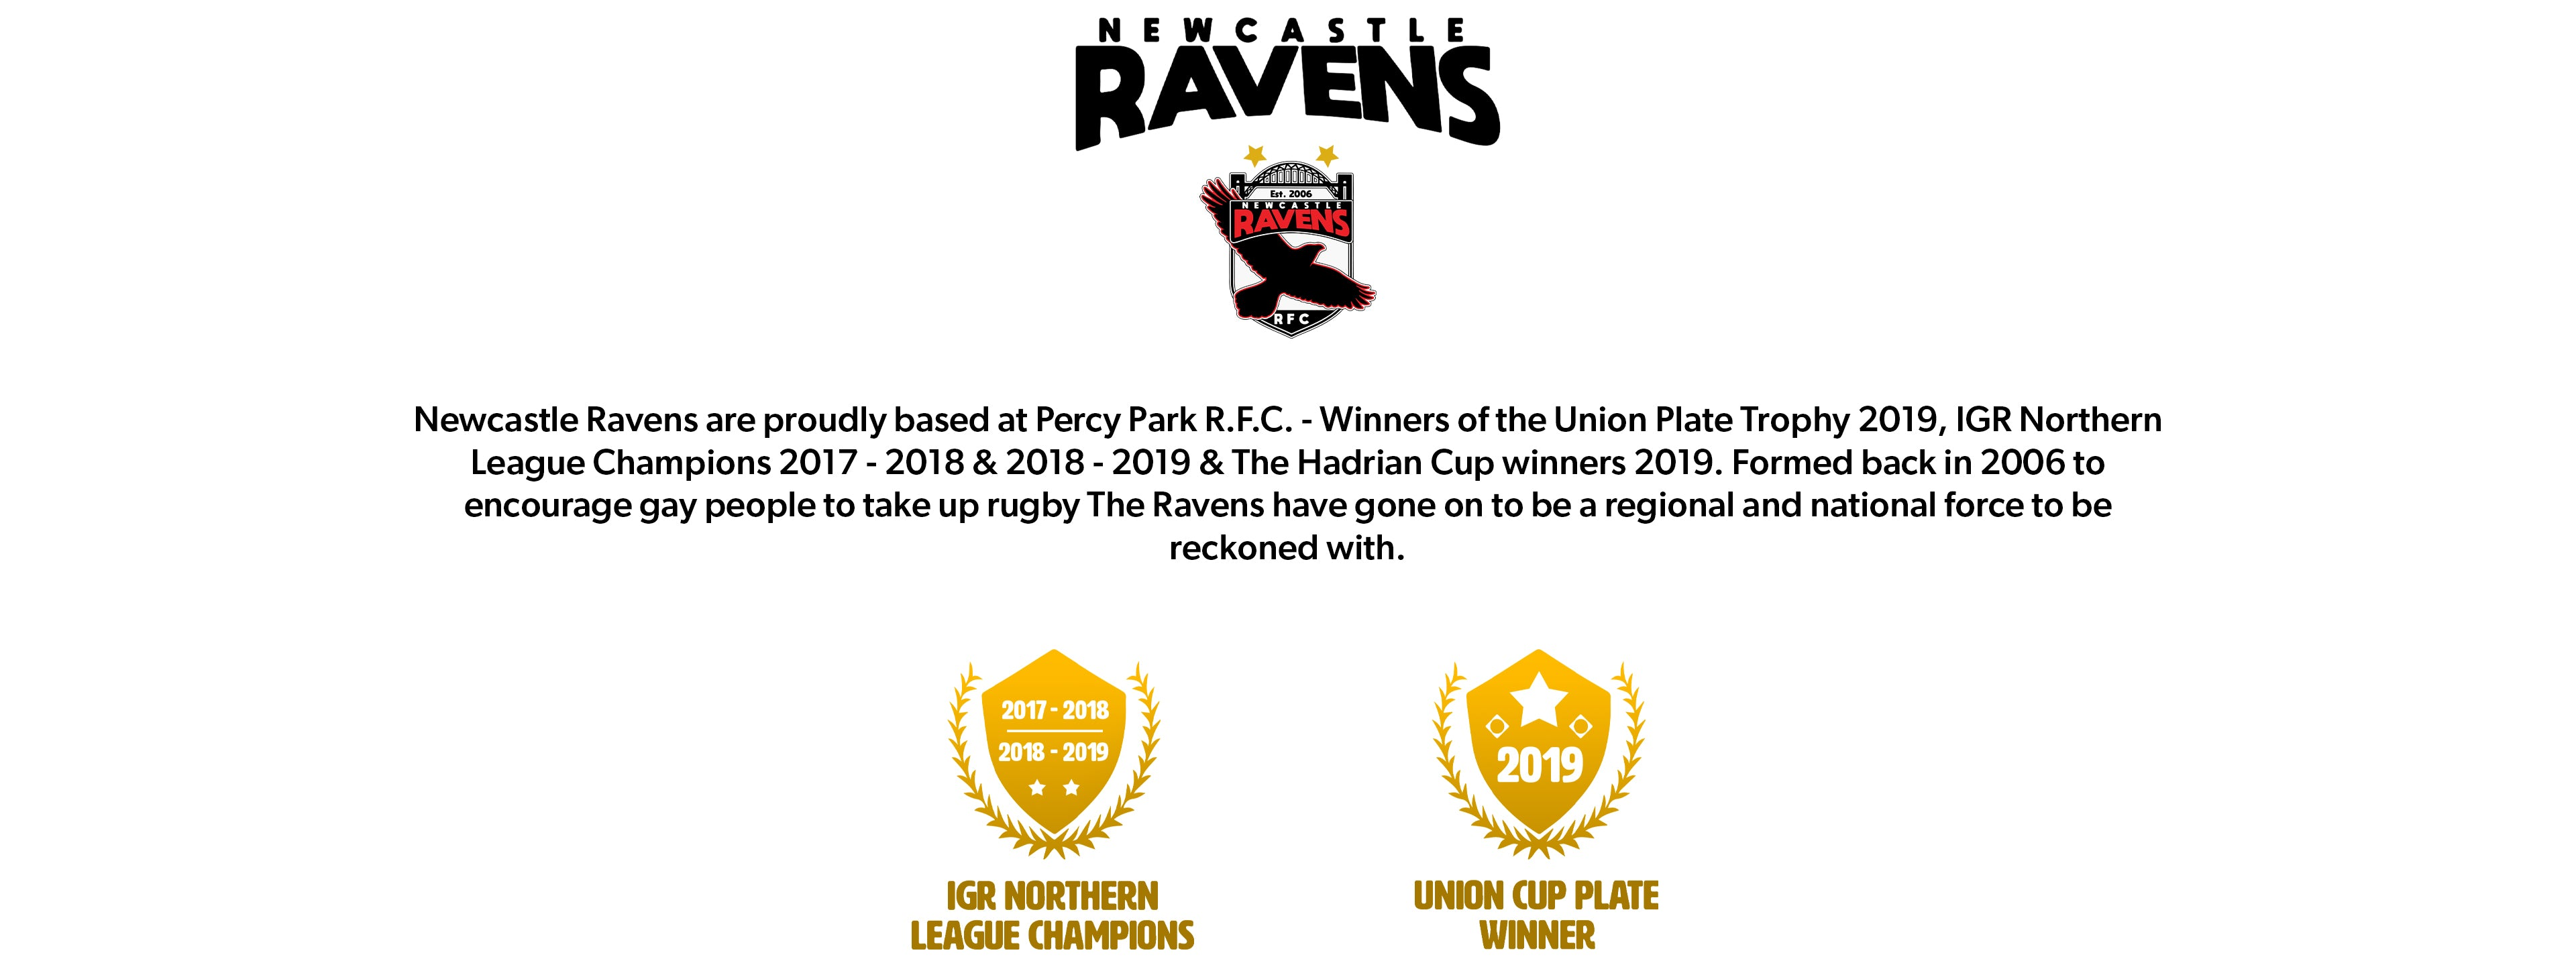 Newcastle Ravens are proudly based at Percy Park R.F.C. - Winners of the Union Plate Trophy 2019, IGR Northern  League Champions 2017 - 2018 & 2018 - 2019 & The Hadrian Cup winners 2019. Formed back in 2006 to encourage gay people to take up rugby The Ravens have gone on to be a regional and national force to be reckoned with.